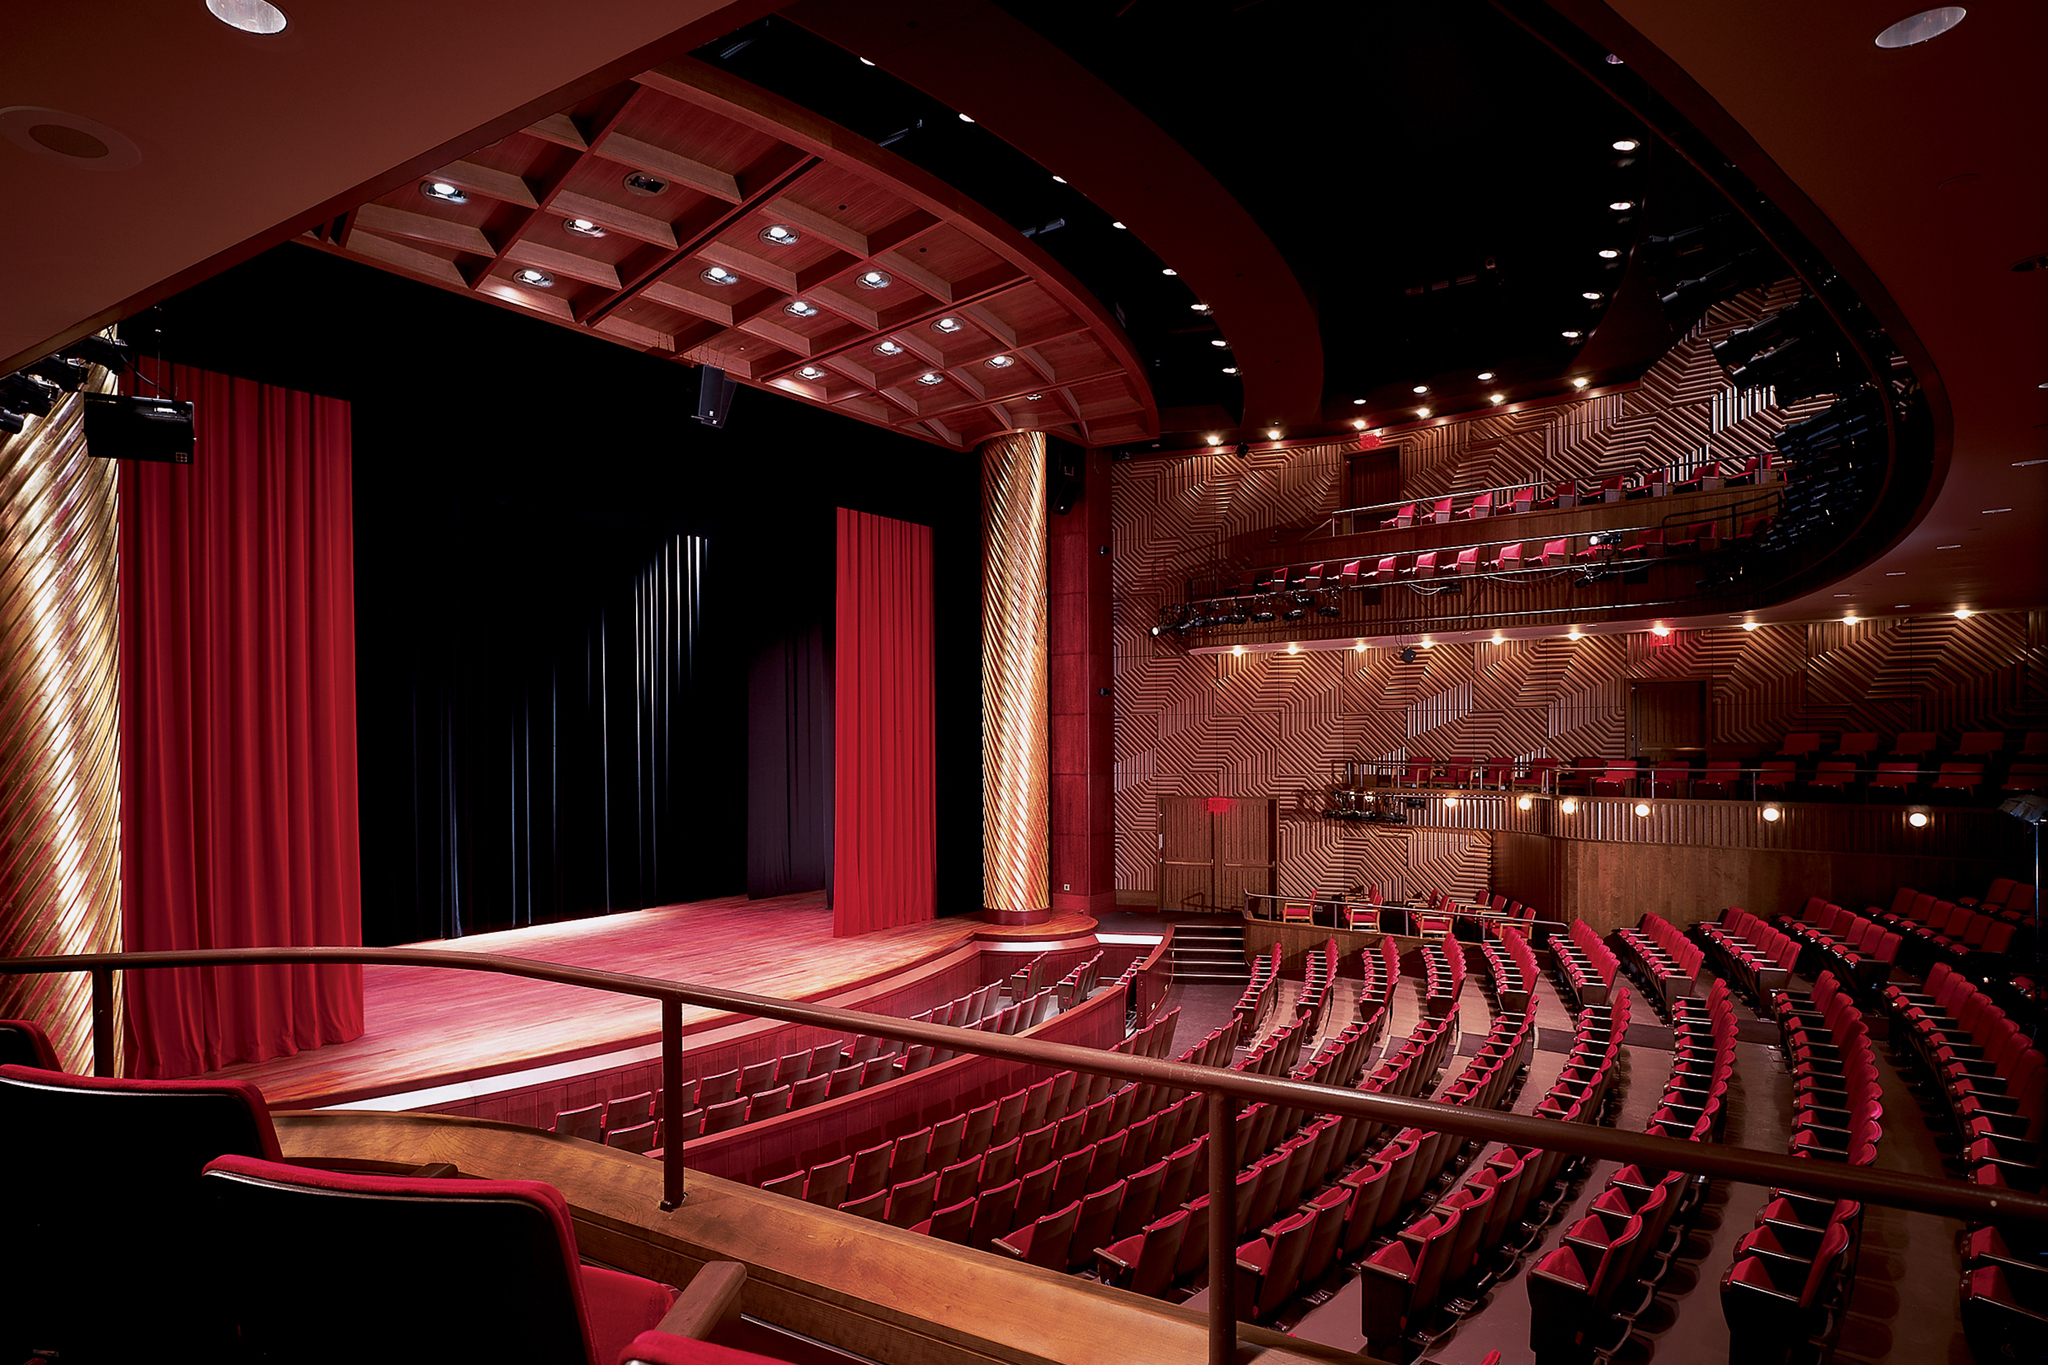 Skirball Center for the Performing Arts